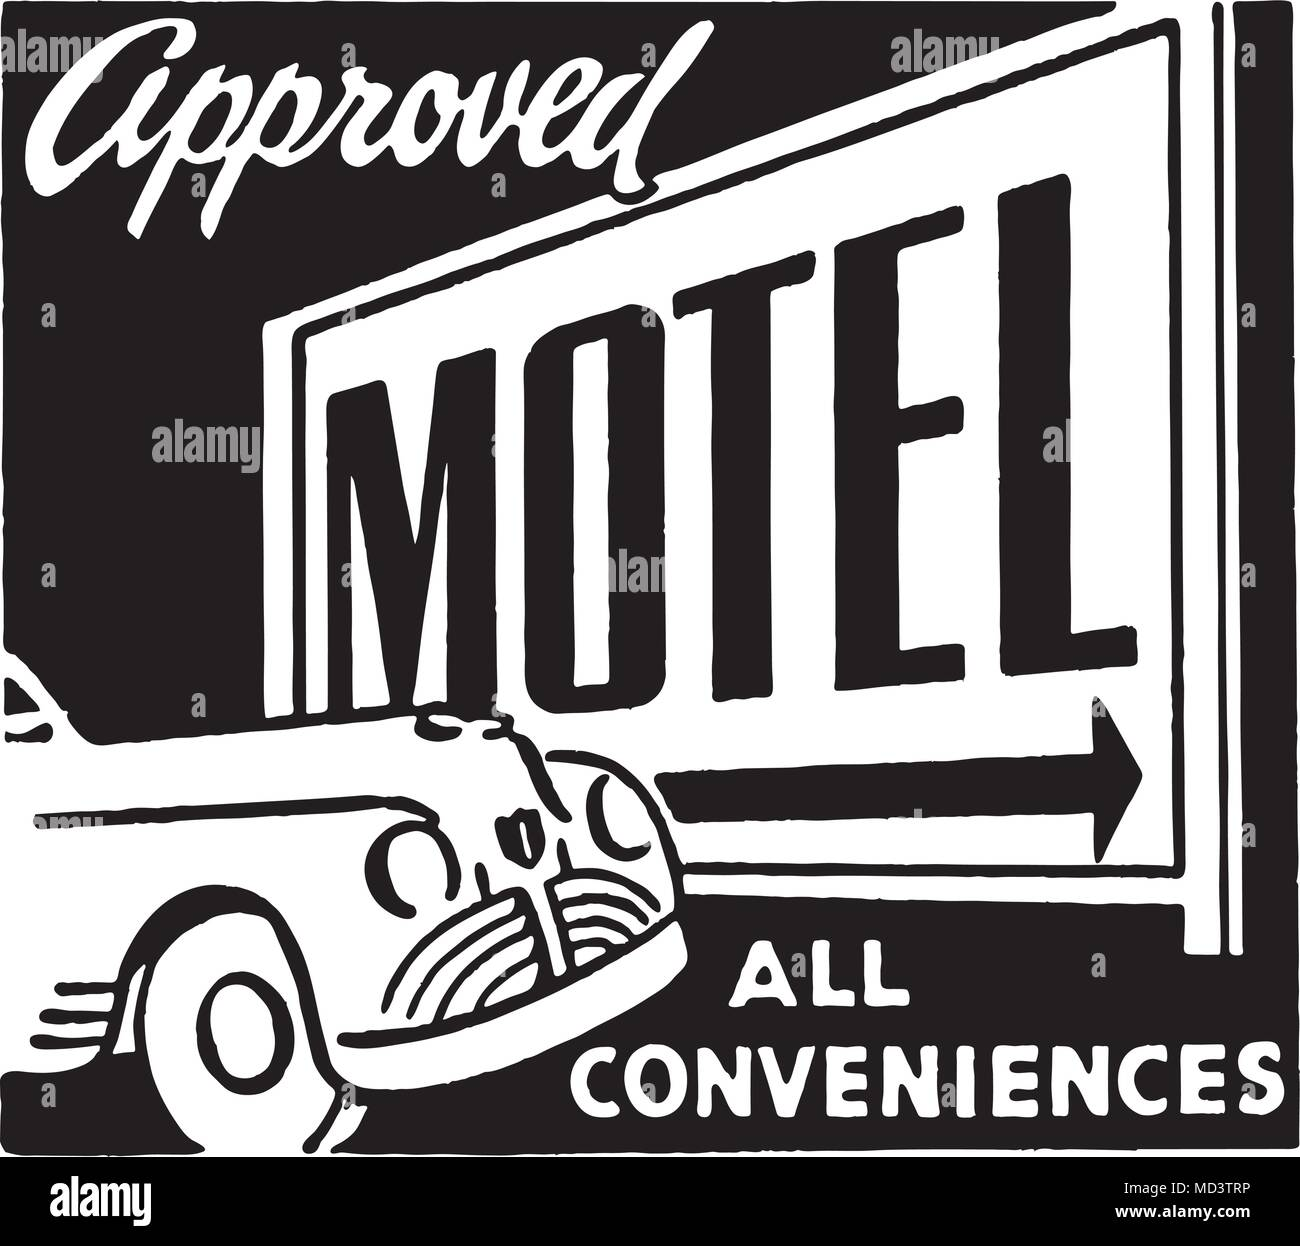 Approved Motel 2 - Retro Ad Art Banner - Stock Image